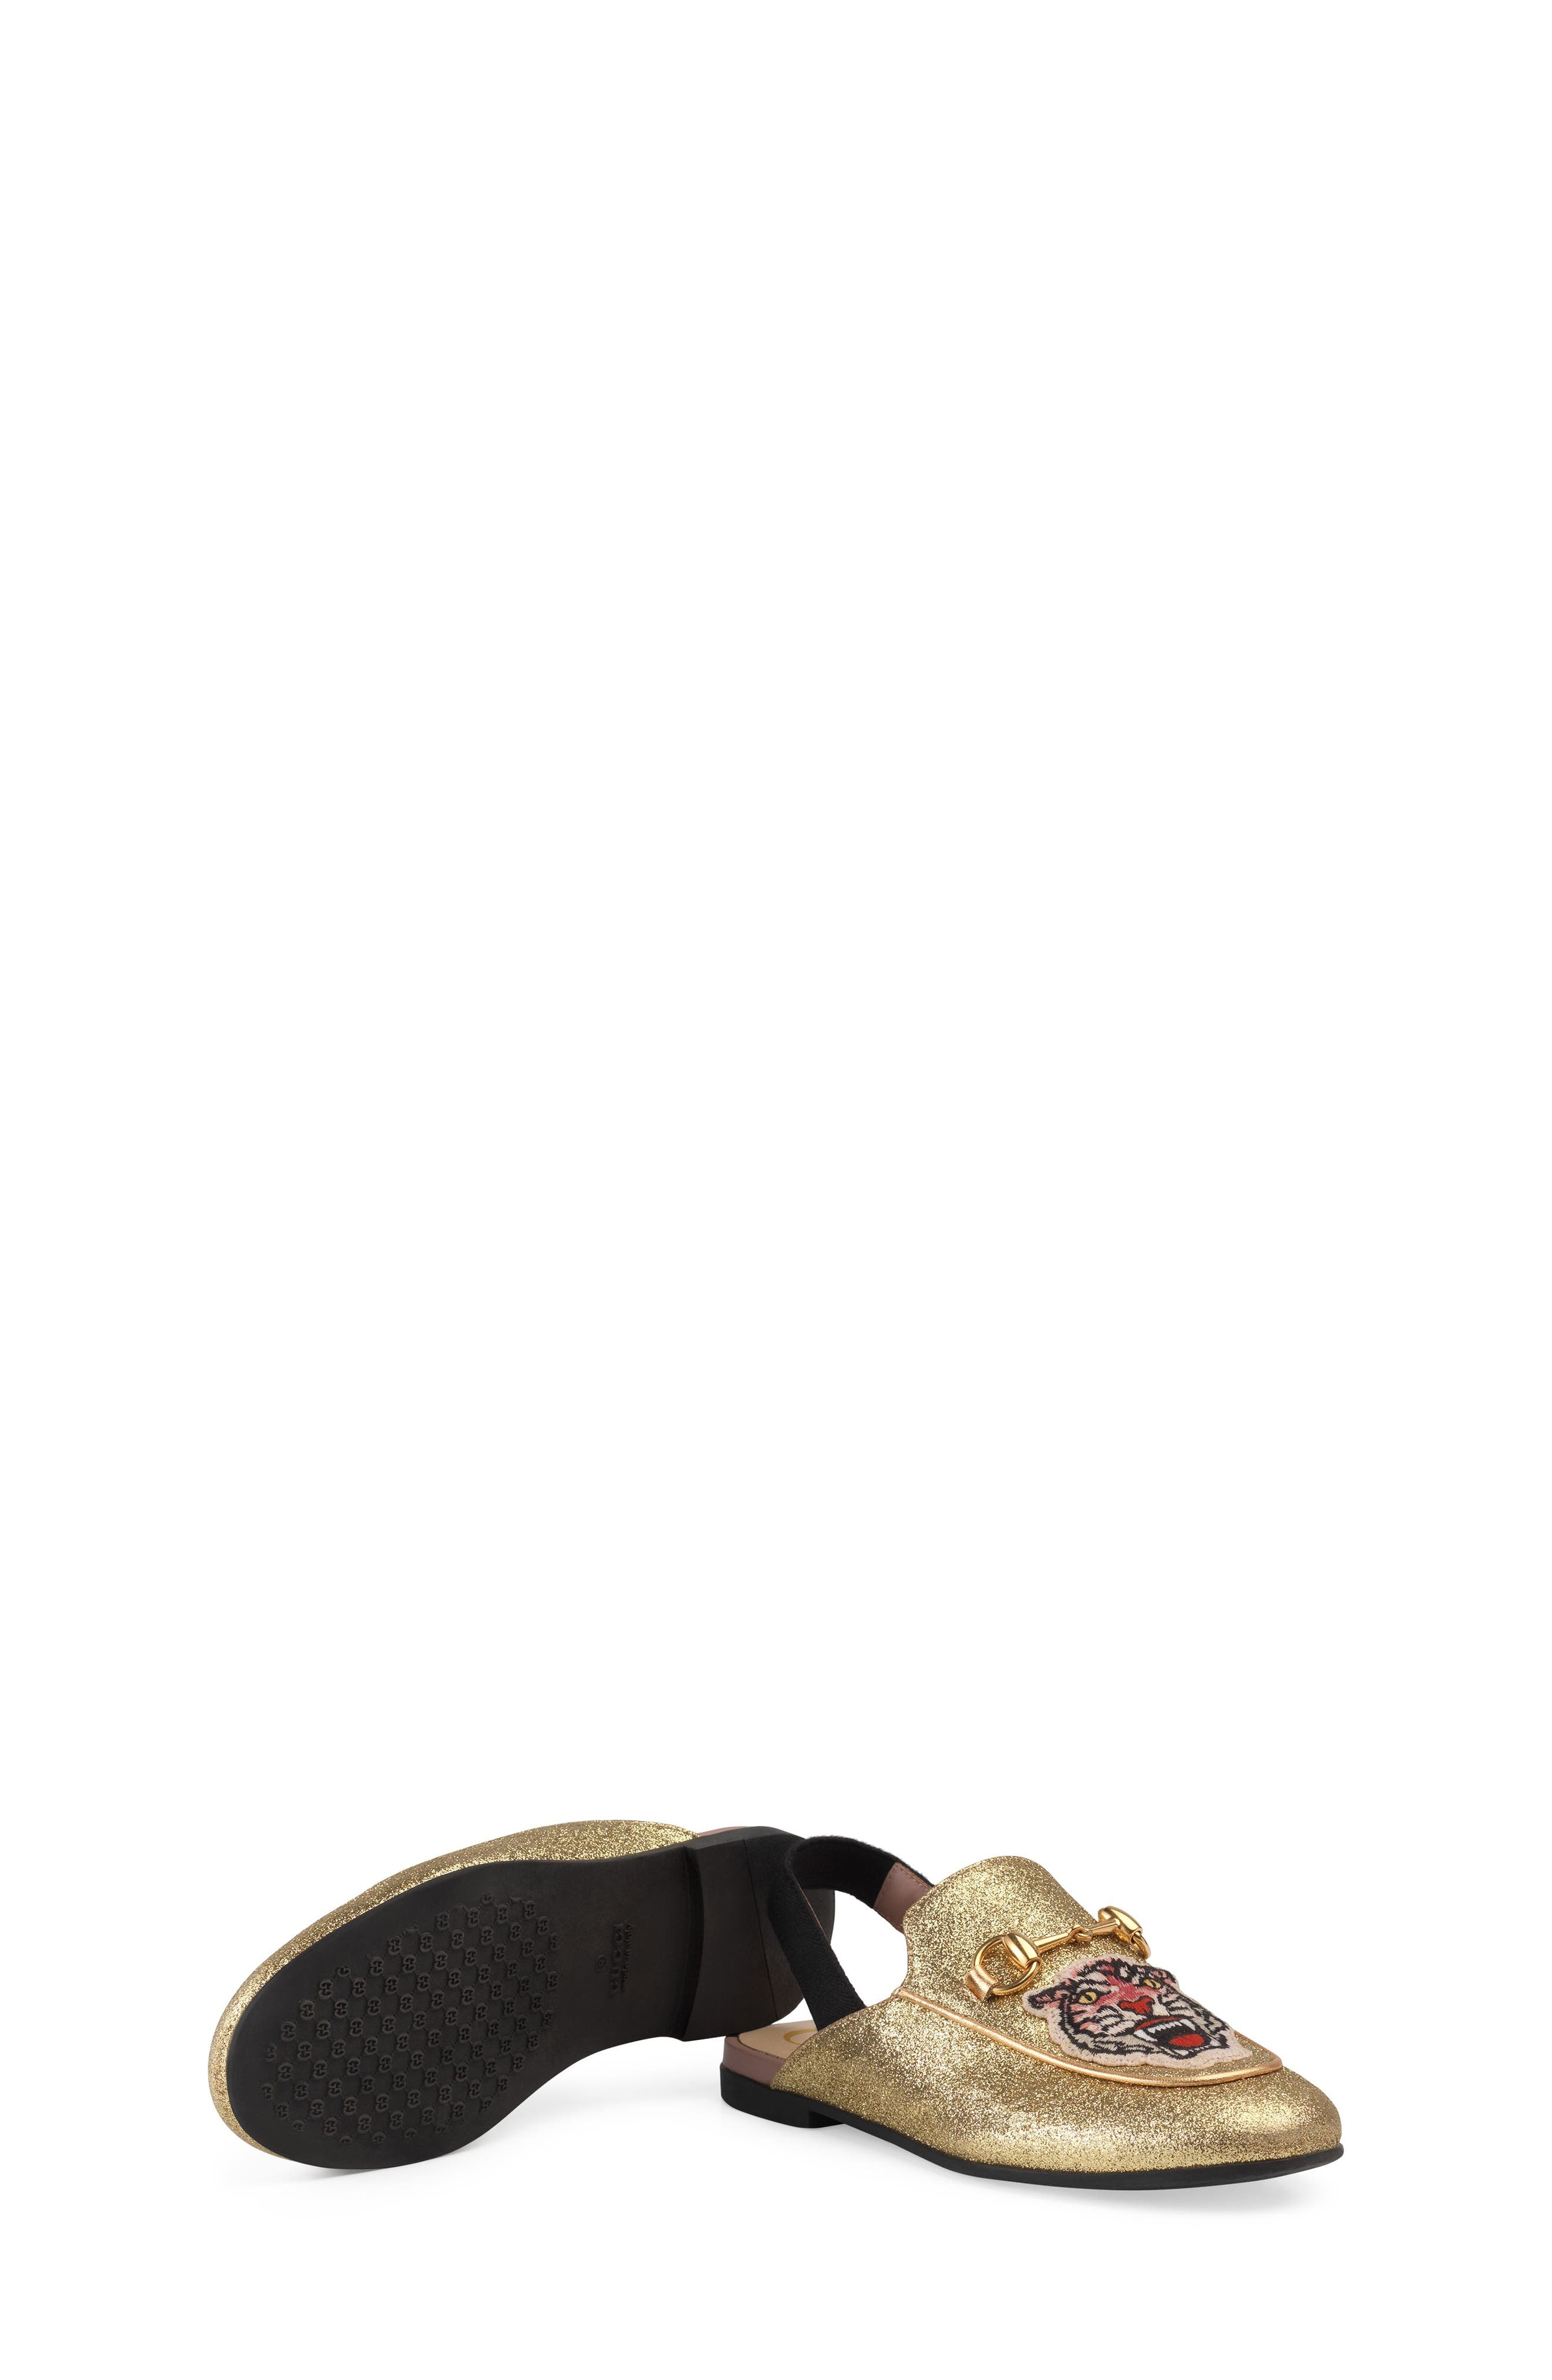 Princetown Glittery Loafer Mule,                             Alternate thumbnail 5, color,                             Gold/ Black